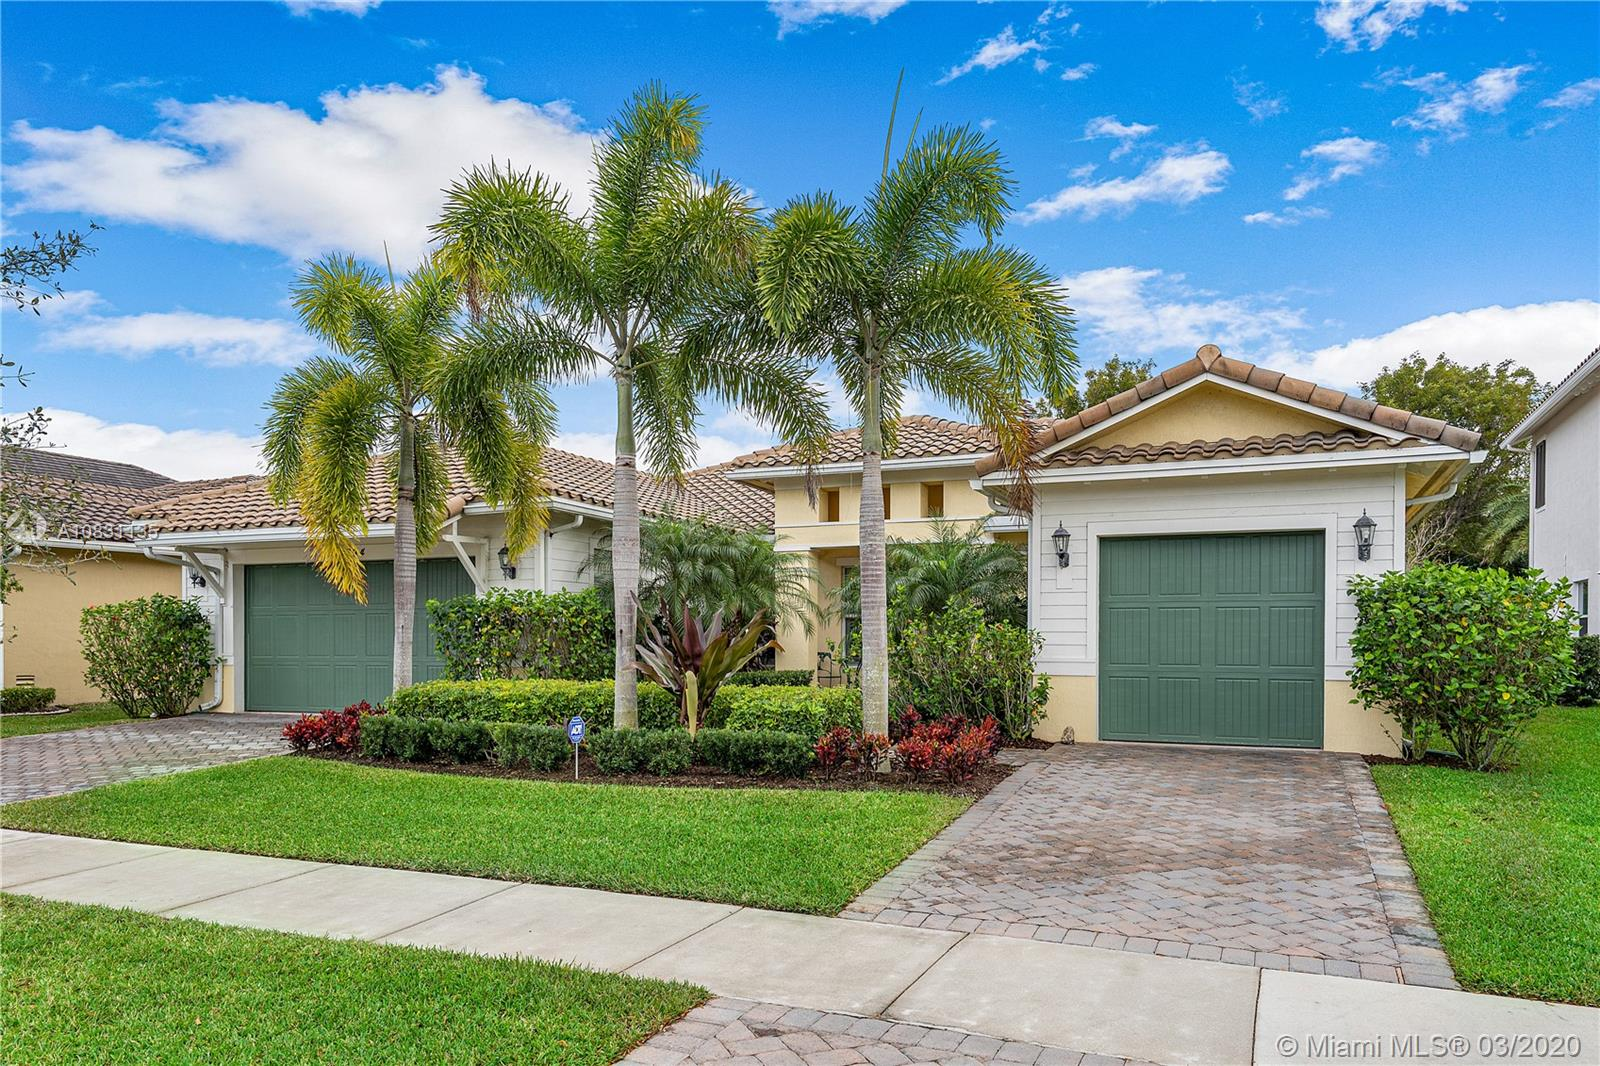 Still easy to show at your convenience! Must see beautiful 4 bedroom, 3 Bath, 3 car garage Cypress Model in the Sawgrass Bay section of Heron Bay. The open floor plan with high ceilings allows for lots of natural light. This home features wood floors, crown molding, plantation shutters throughout, impact glass, a gourmet kitchen with natural gas cooktop, stainless steel appliances and upgraded cabinets, tray ceilings in multiple rooms, designer chandeliers, covered lanai, private backyard with free form pool and spacious brick paver pool deck, and more. Heron Bay is a great place to live with two clubhouses, resort style amenities and great schools. Make an appointment to visit Parkland and view this exceptional location and beautiful home. All bedroom carpeting and 1 a/c recently replaced